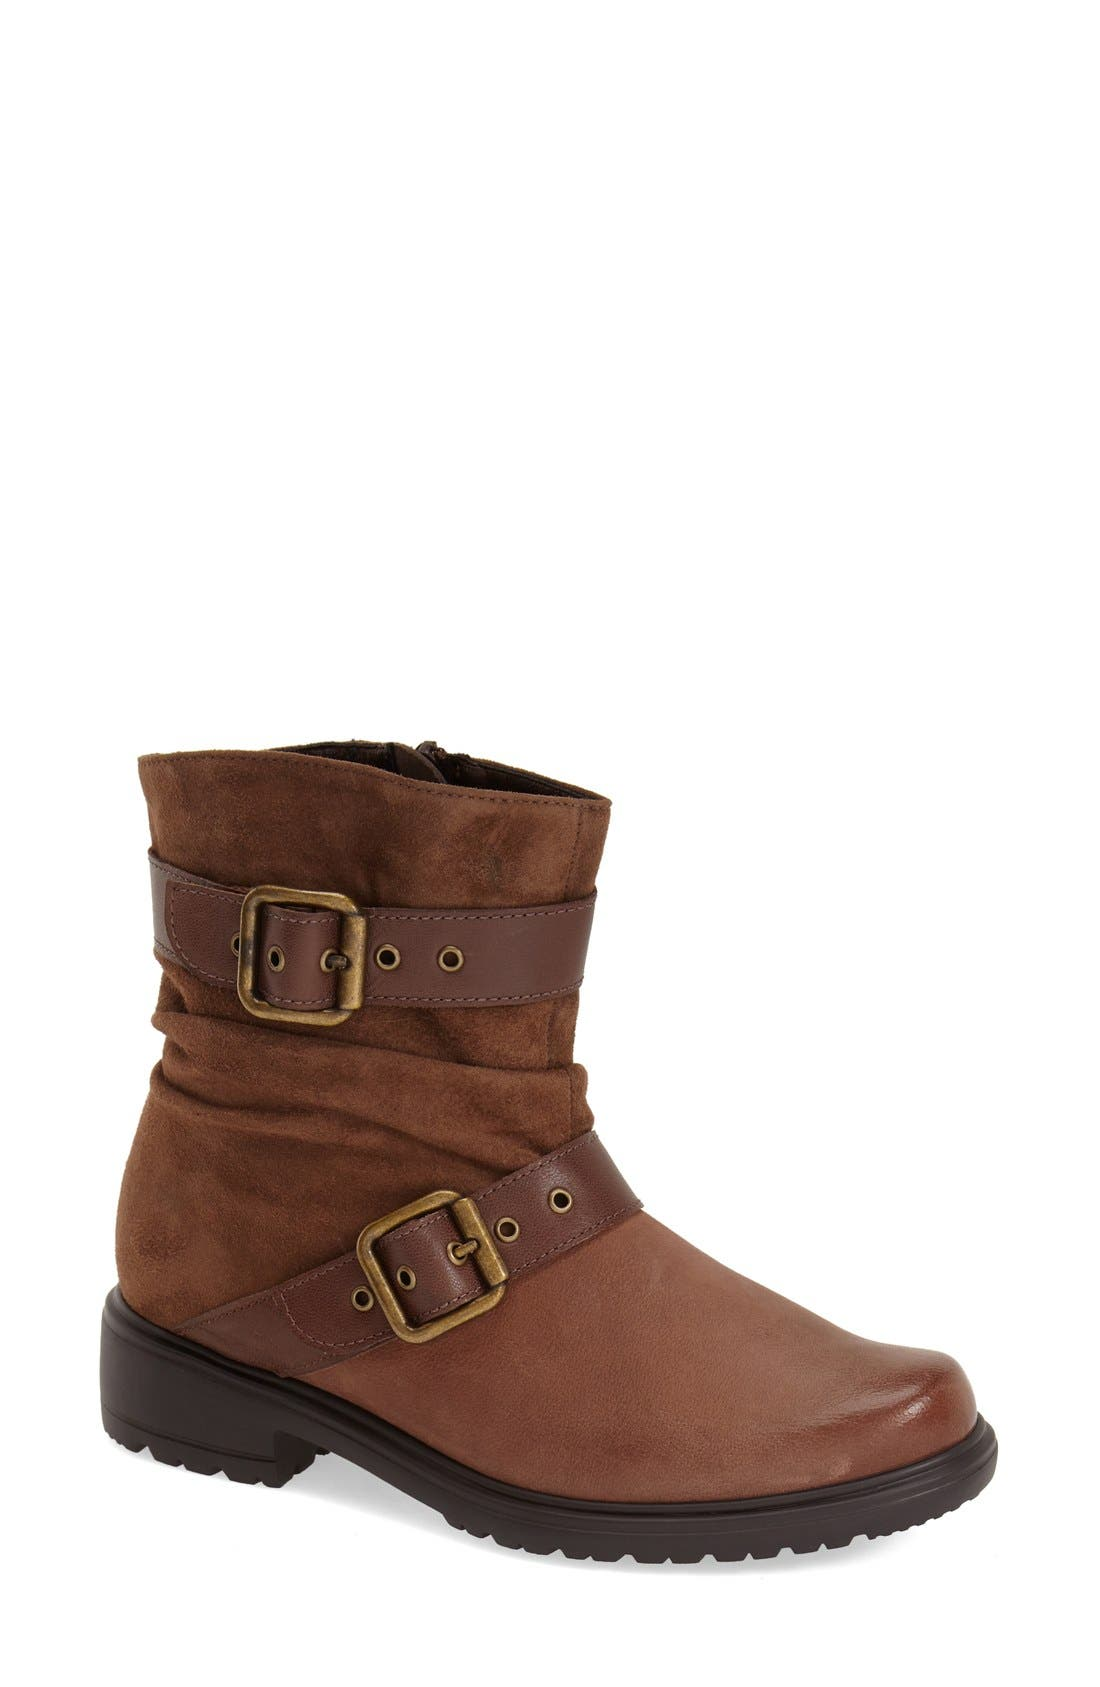 Munro Dallas Boot